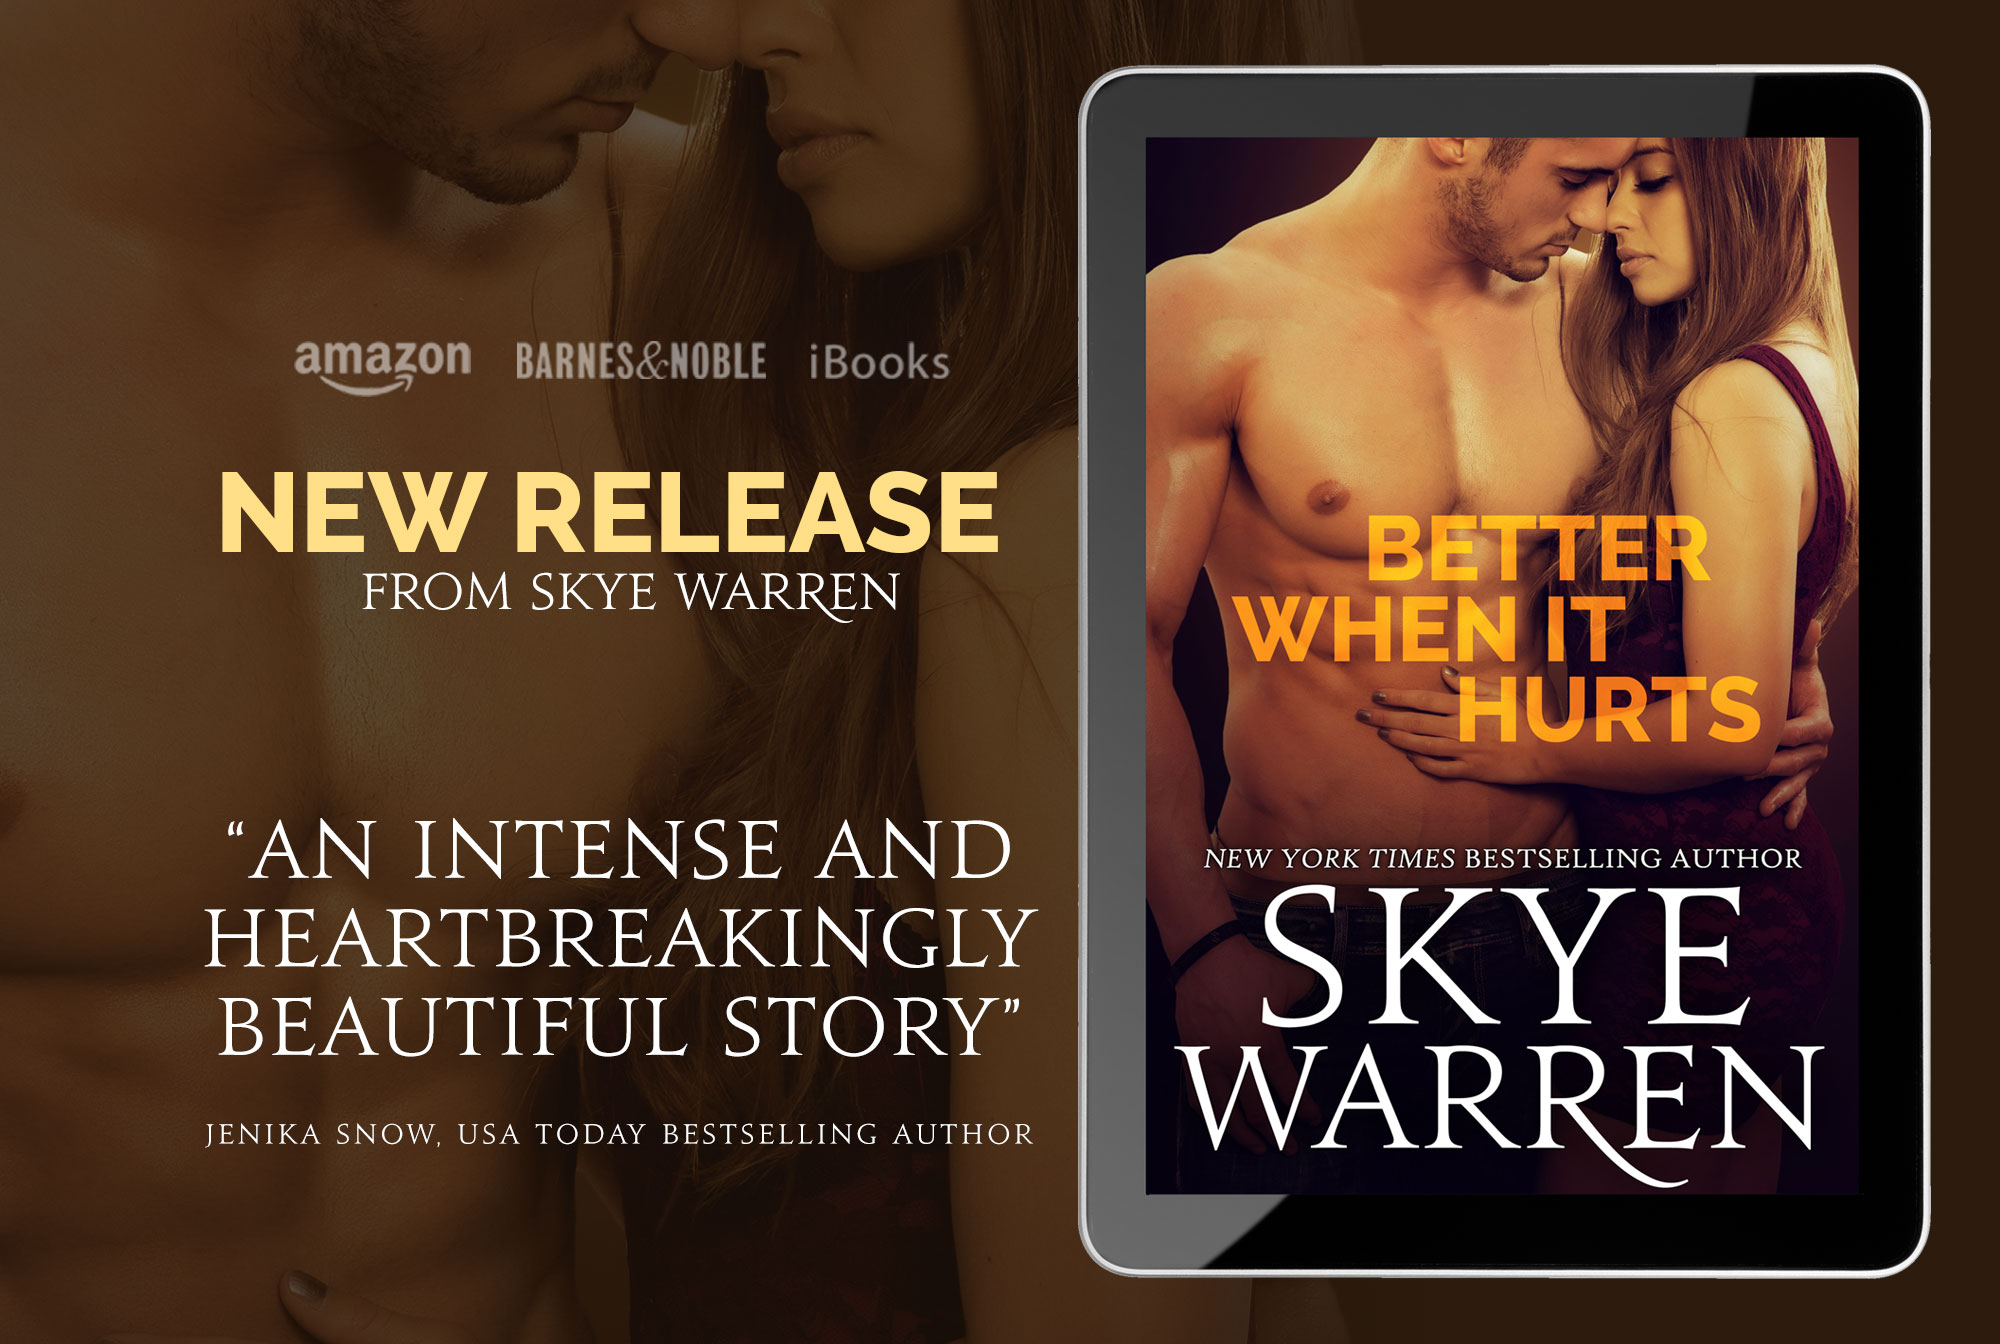 Skye Warren - Better When It Hurts